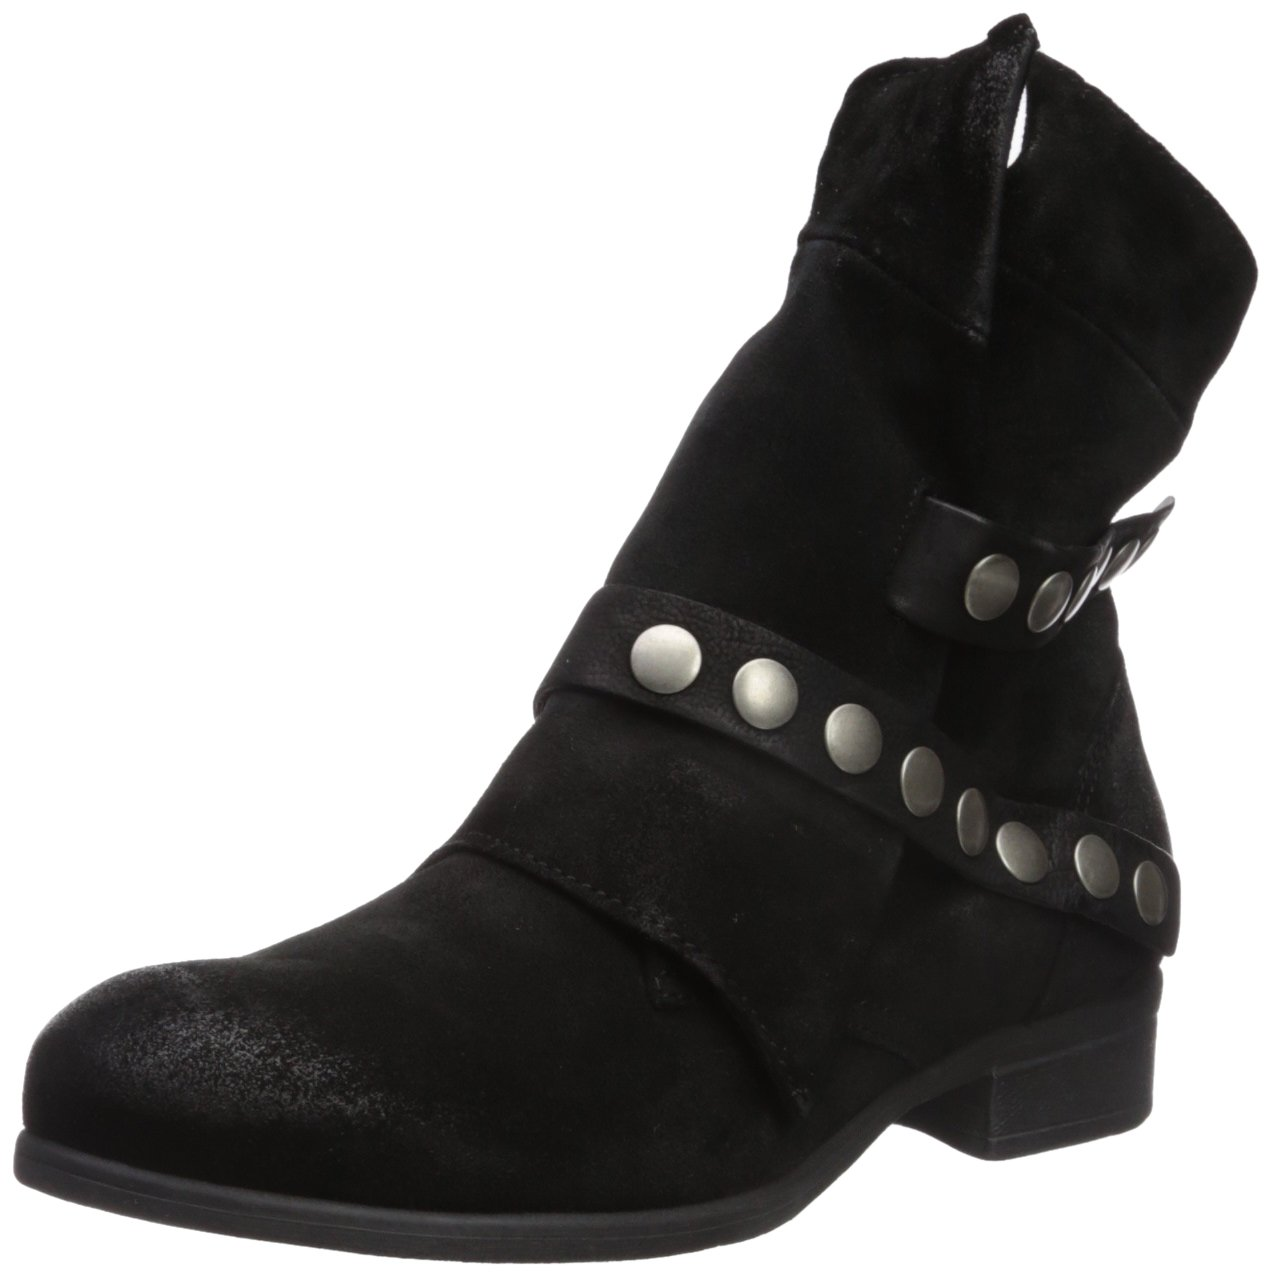 Miz Mooz Women's Silvia Fashion Boot B06XSJRF8D 39 M EU (8.5-9 US)|Black